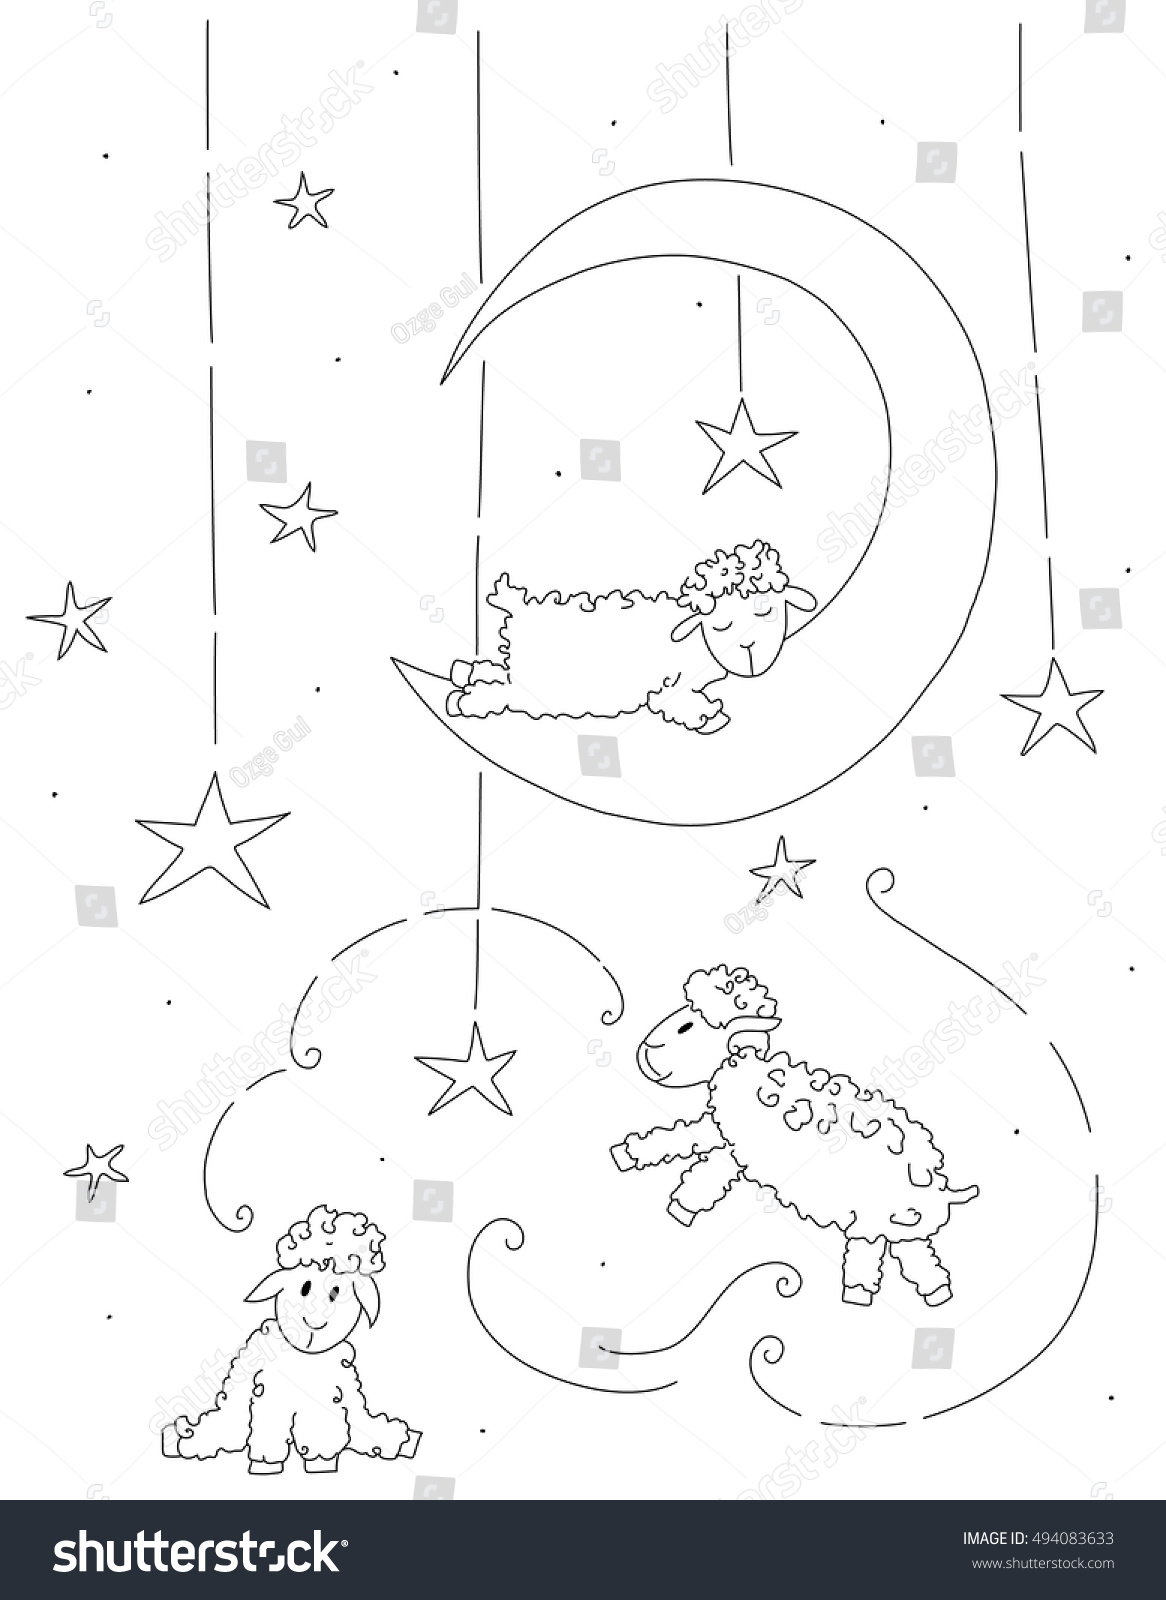 sleeping sheep coloring pages - photo#15